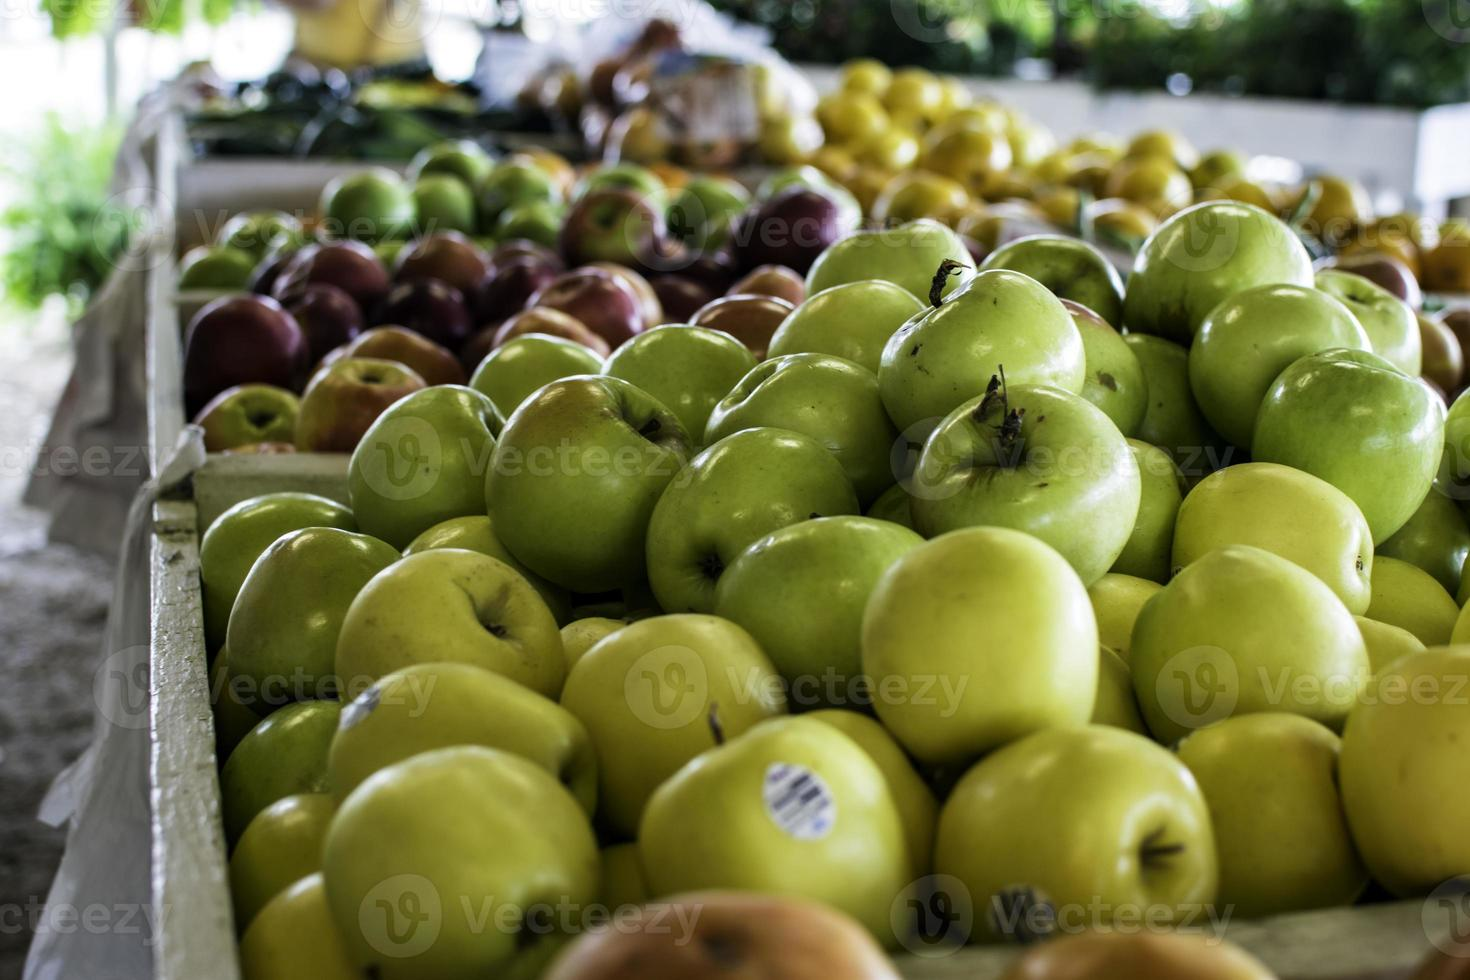 Assorted apples on display at farmers' market photo